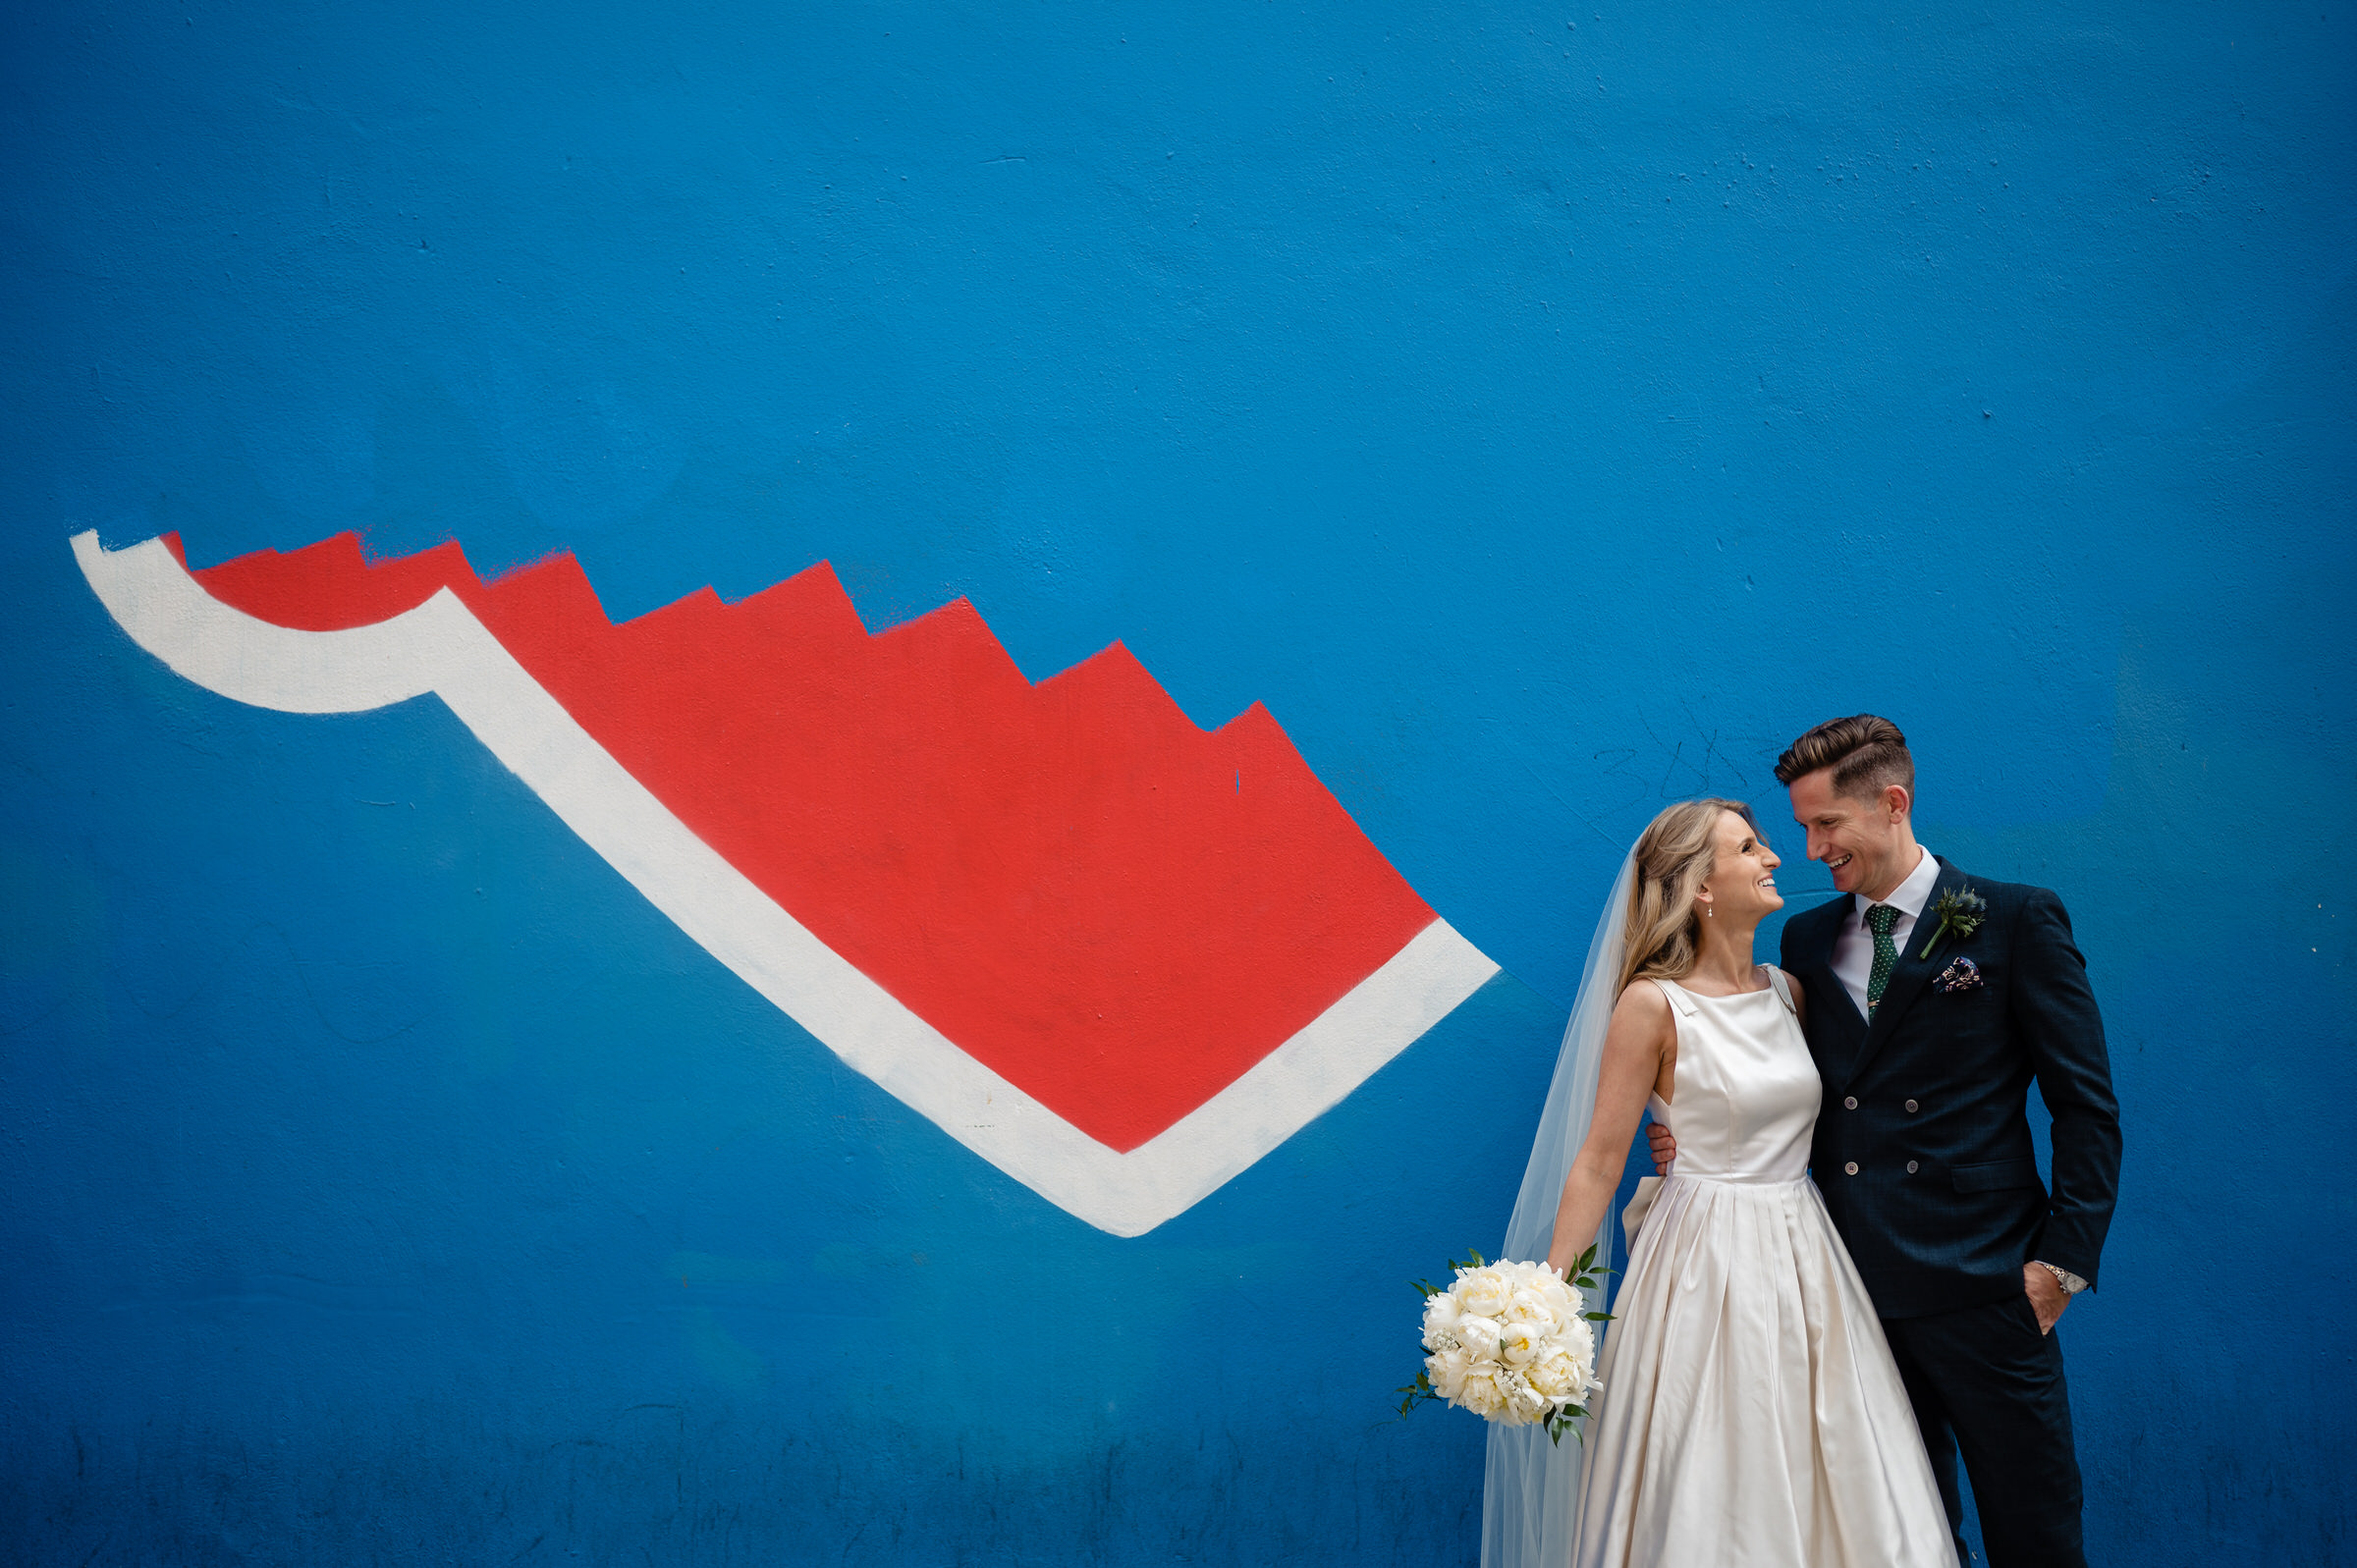 Couple portrait against dramatic wall art - photo by John Gillooley